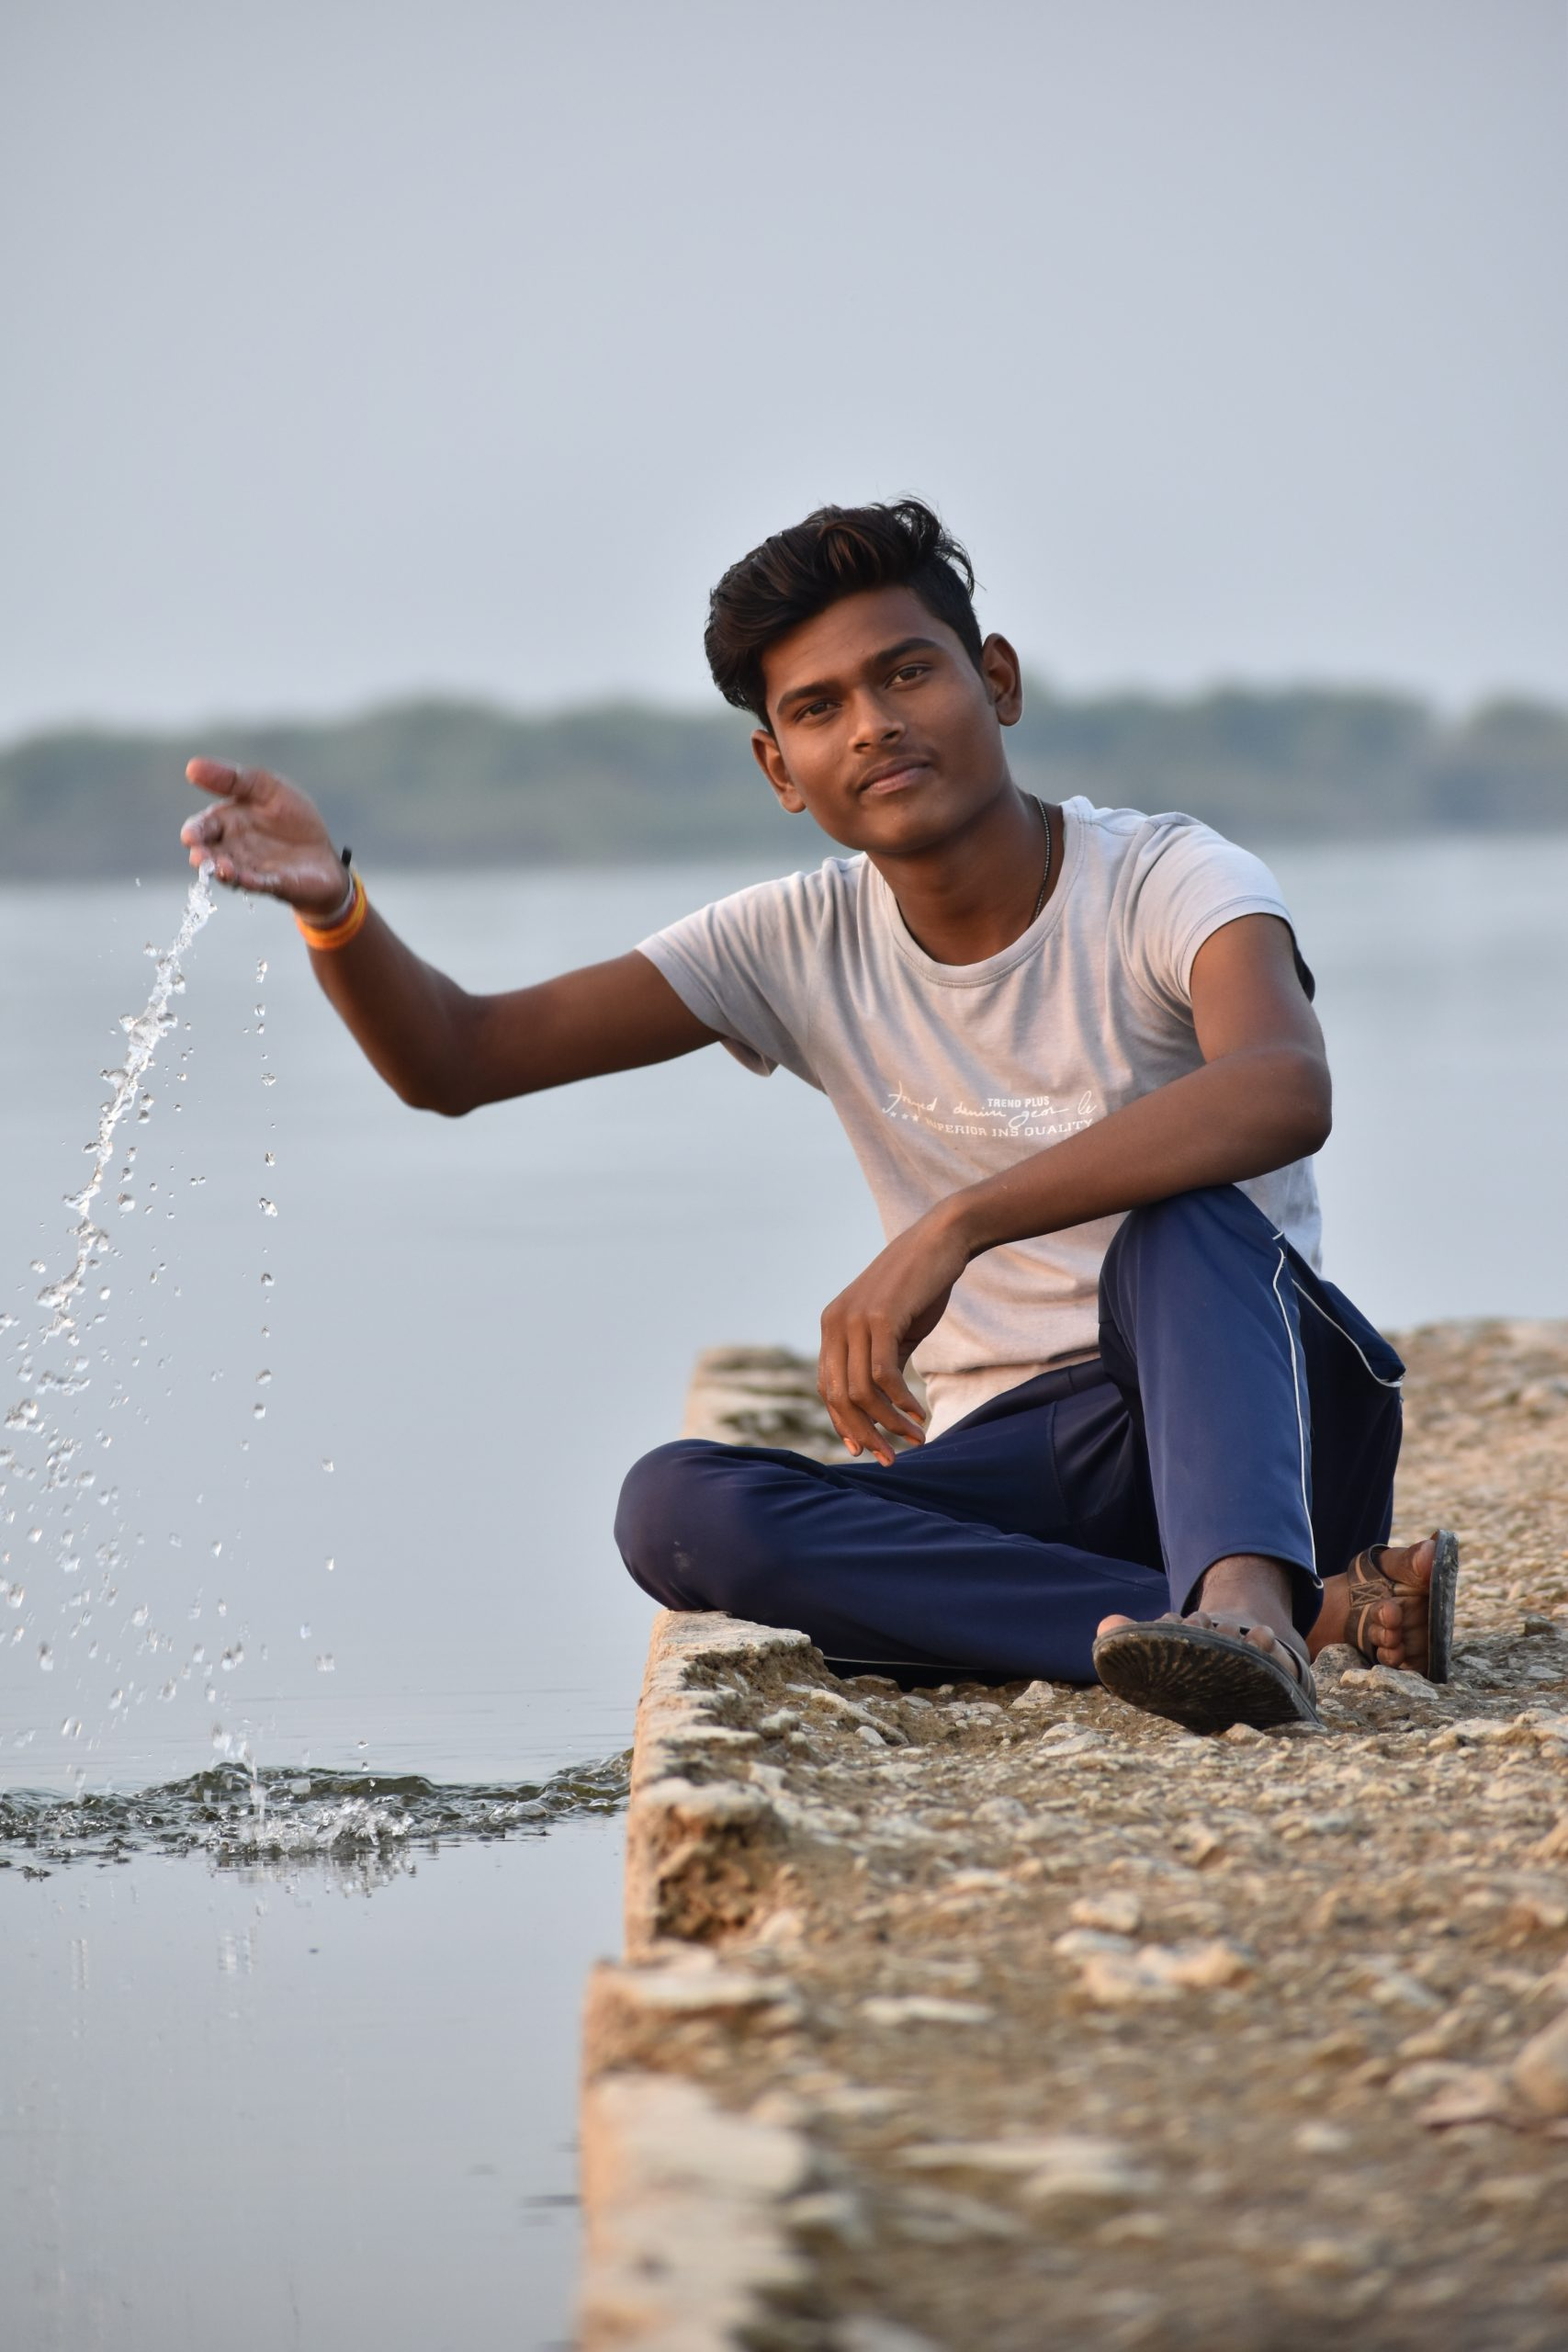 Boy playing with water near the river